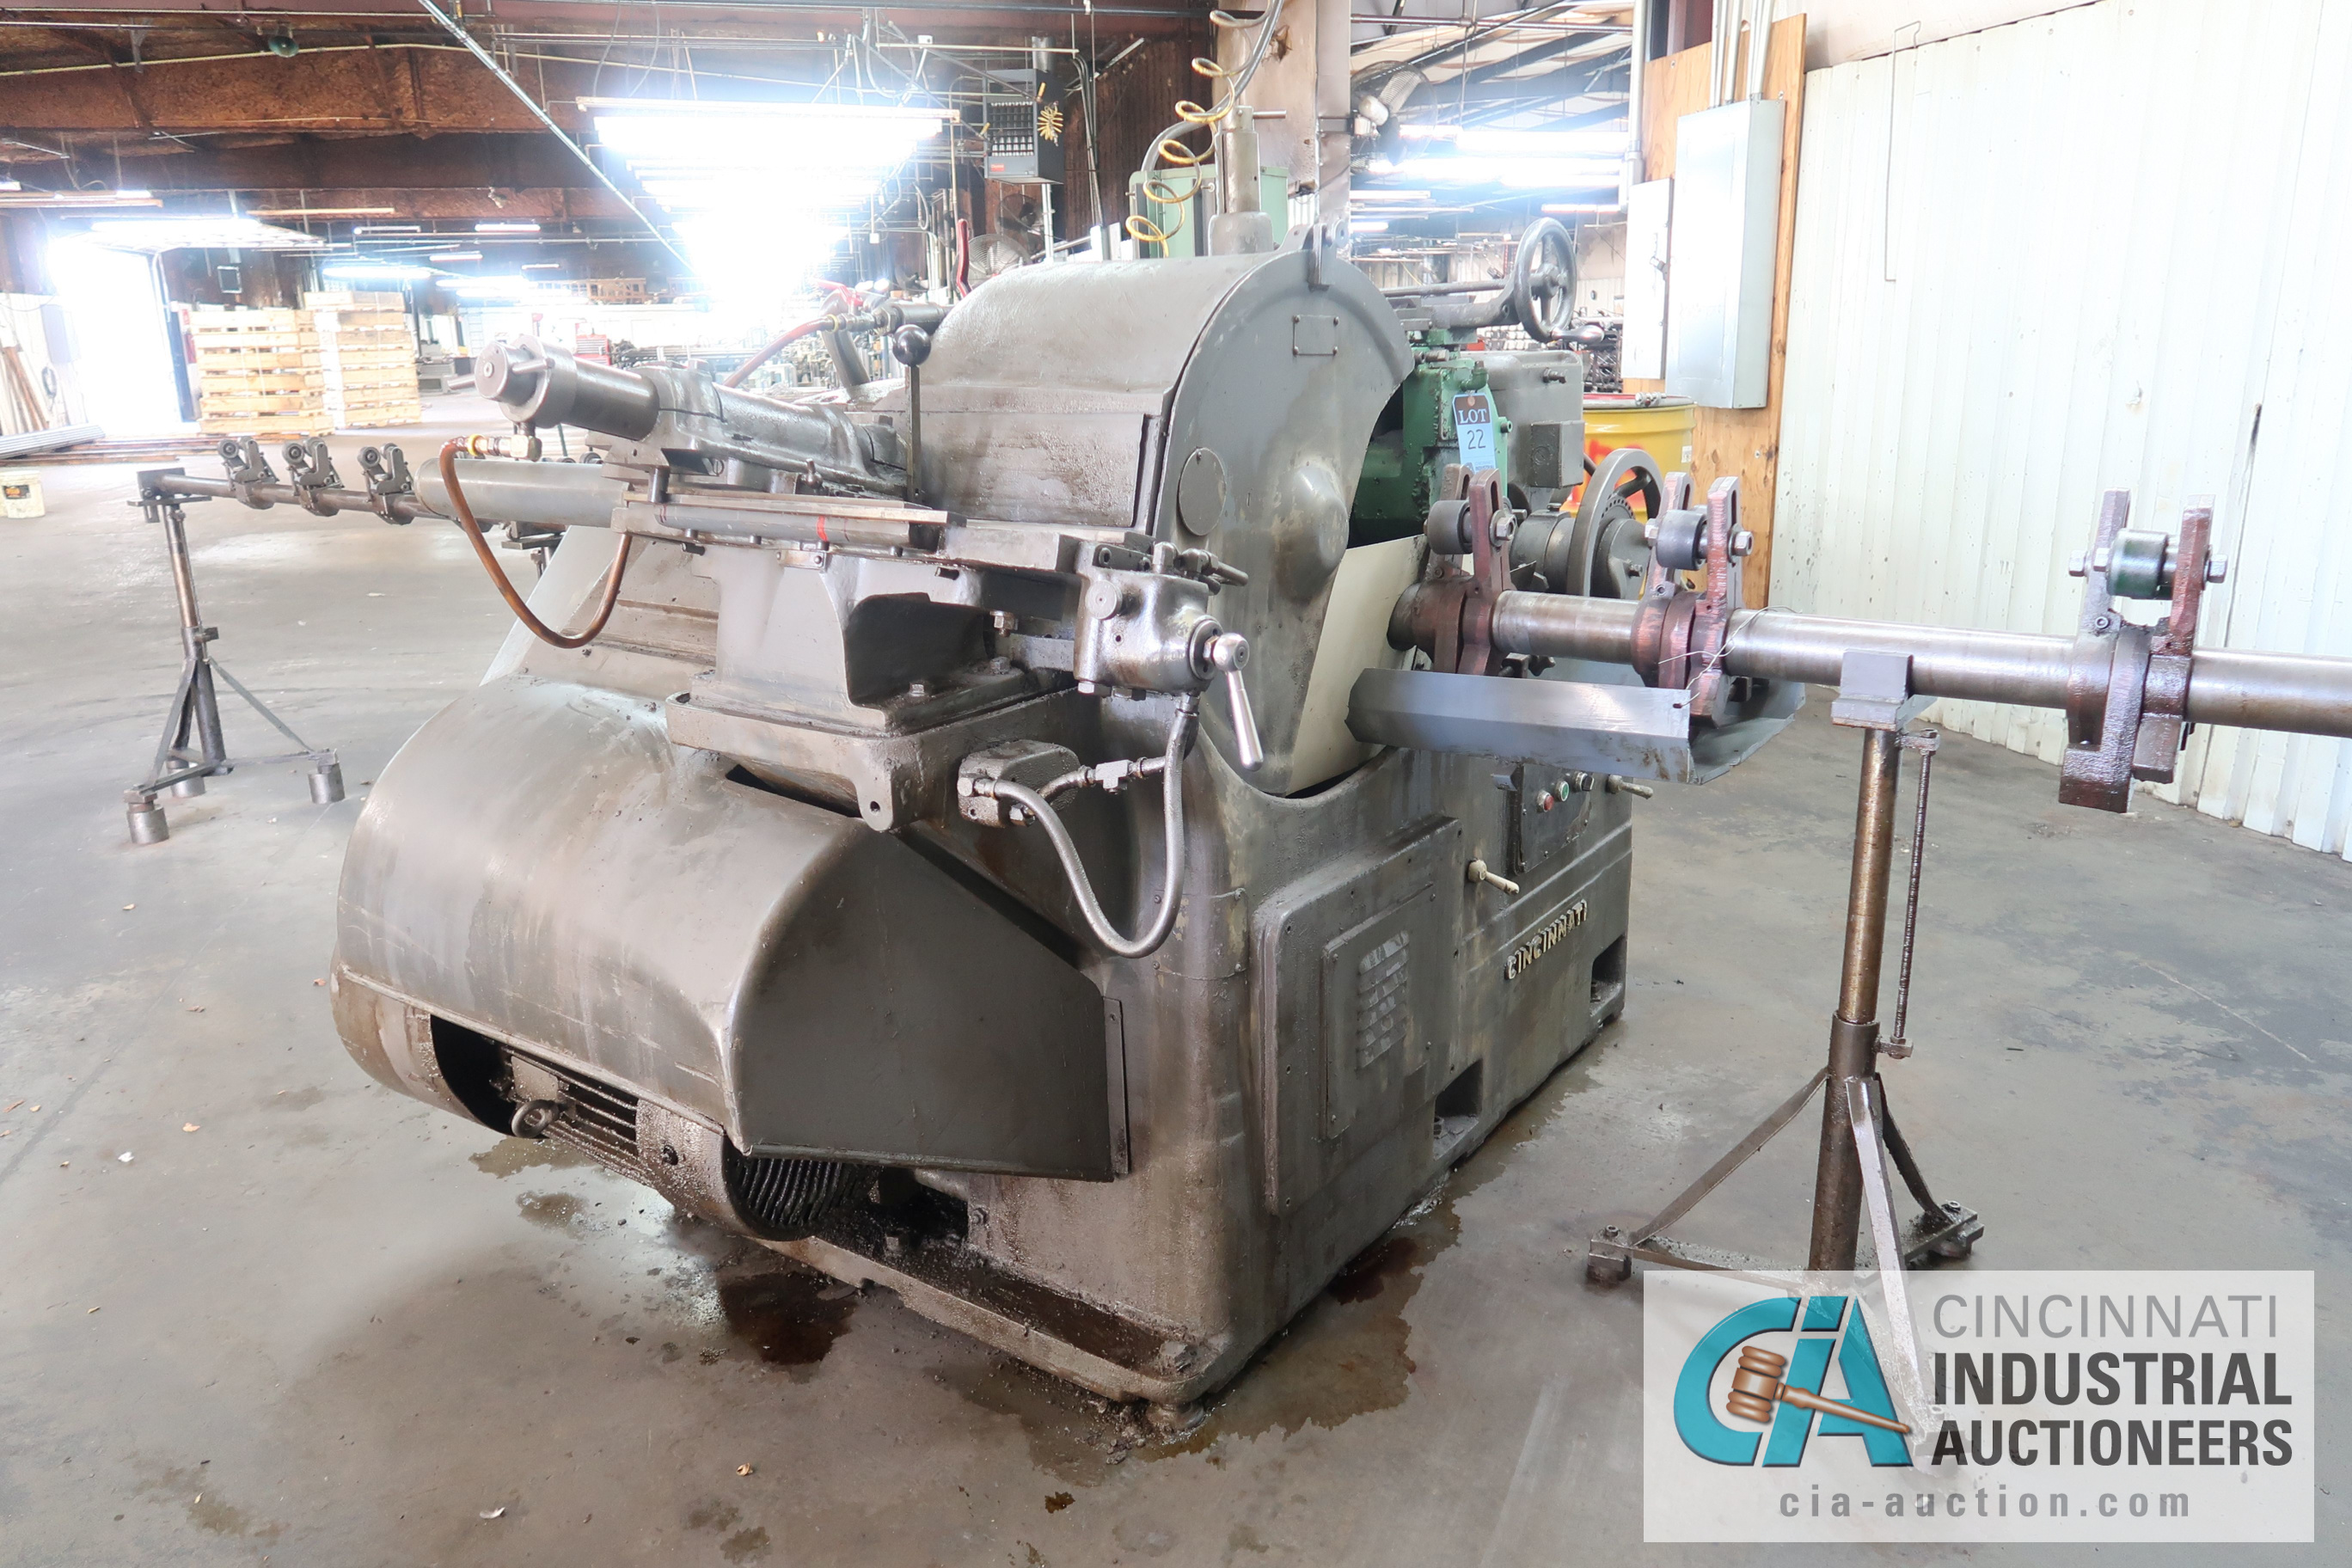 CINCINNATI MODEL 3 CENTERLESS GRINDER; S/N 3M3H5A-37 WITH INFEED AND OUTFEED CONVEYORS - Image 3 of 5